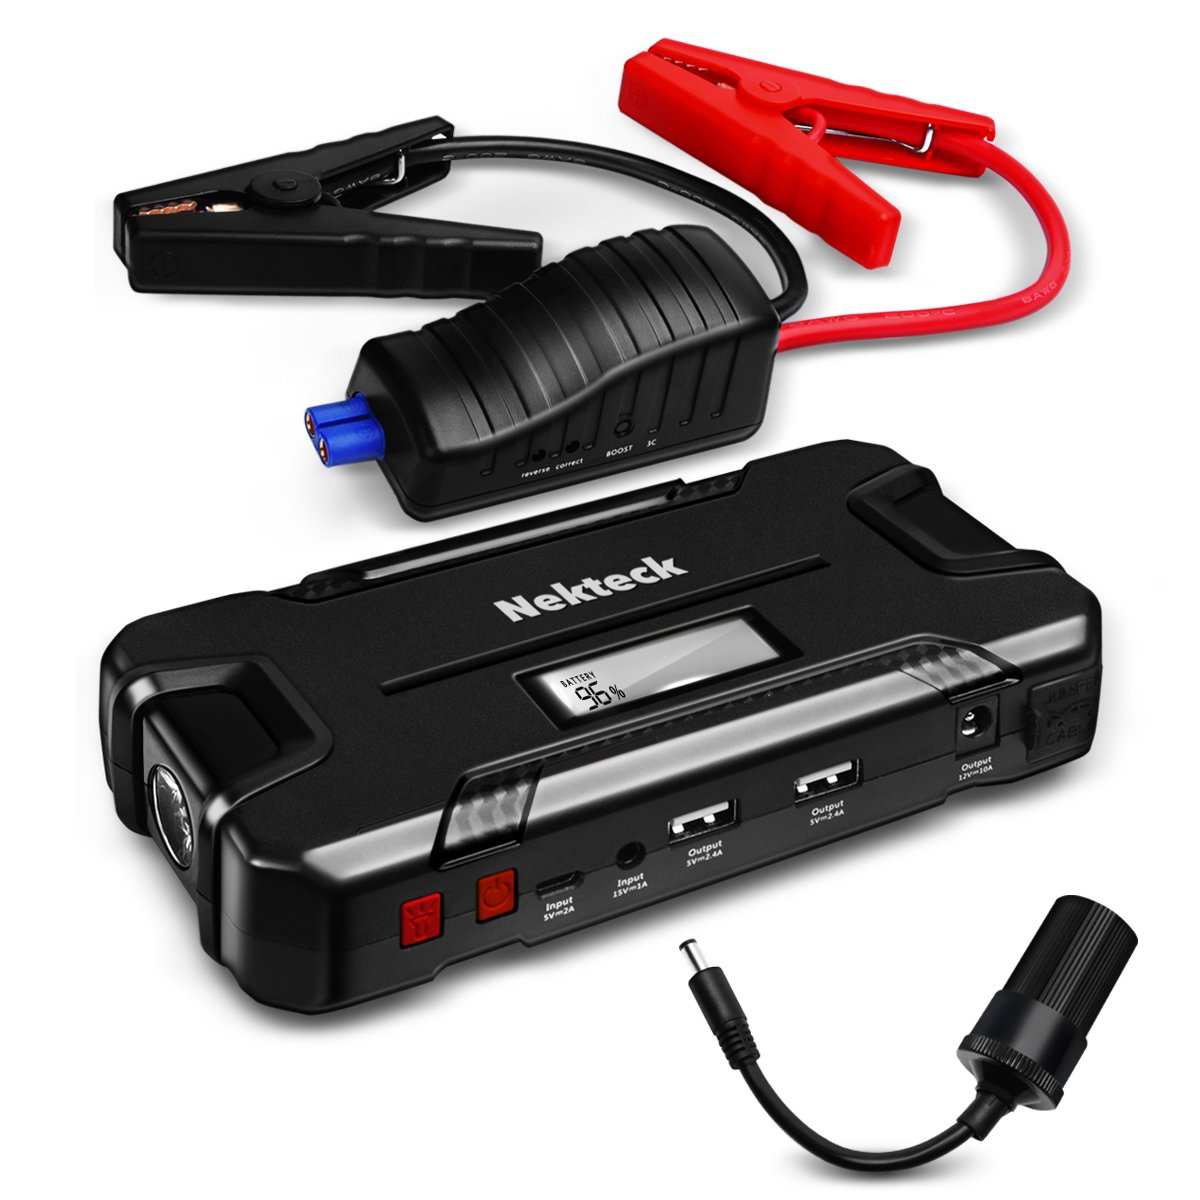 Nekteck Car Jump Starter Automotive Battery Booster And 12000mAh Portable External Battery Charger For Vehicles, Motorcycle, Boats, Smartphone, With LED Flashlight And 12V Output 500A Peak Current